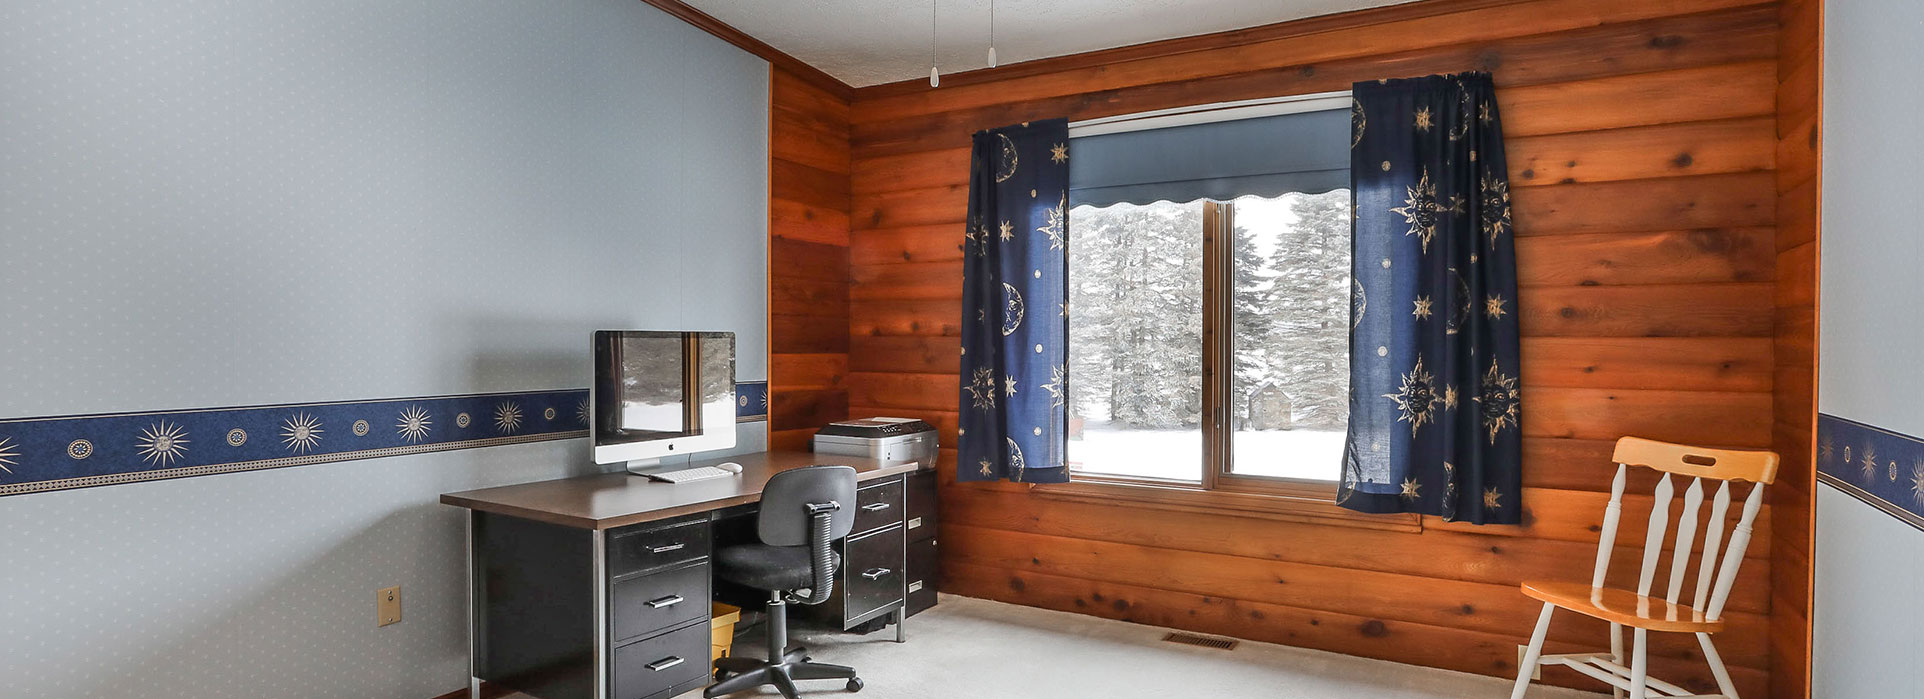 5870 Concession 2 - Office area - Cripps Realty